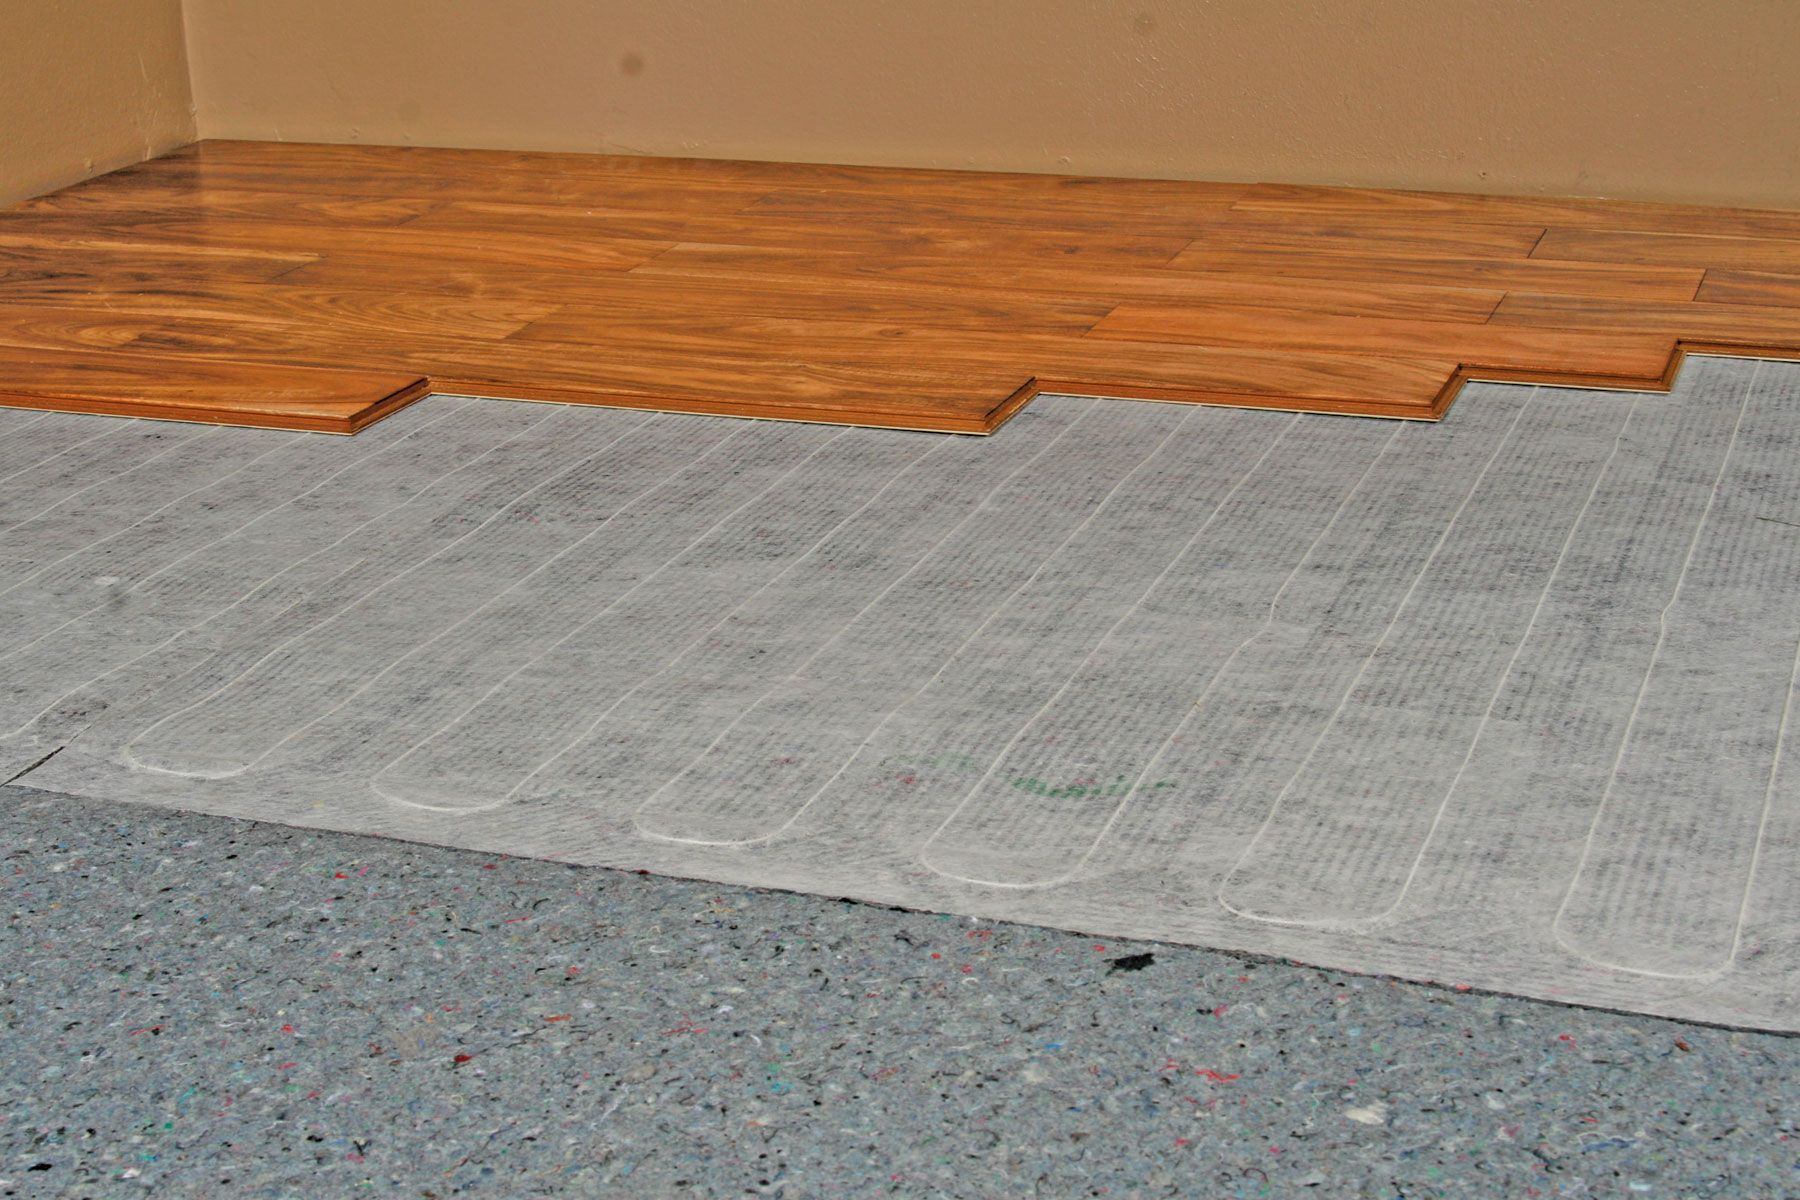 Quietwarmth combines acoustical and insulating technology with kitchen floors dailygadgetfo Gallery